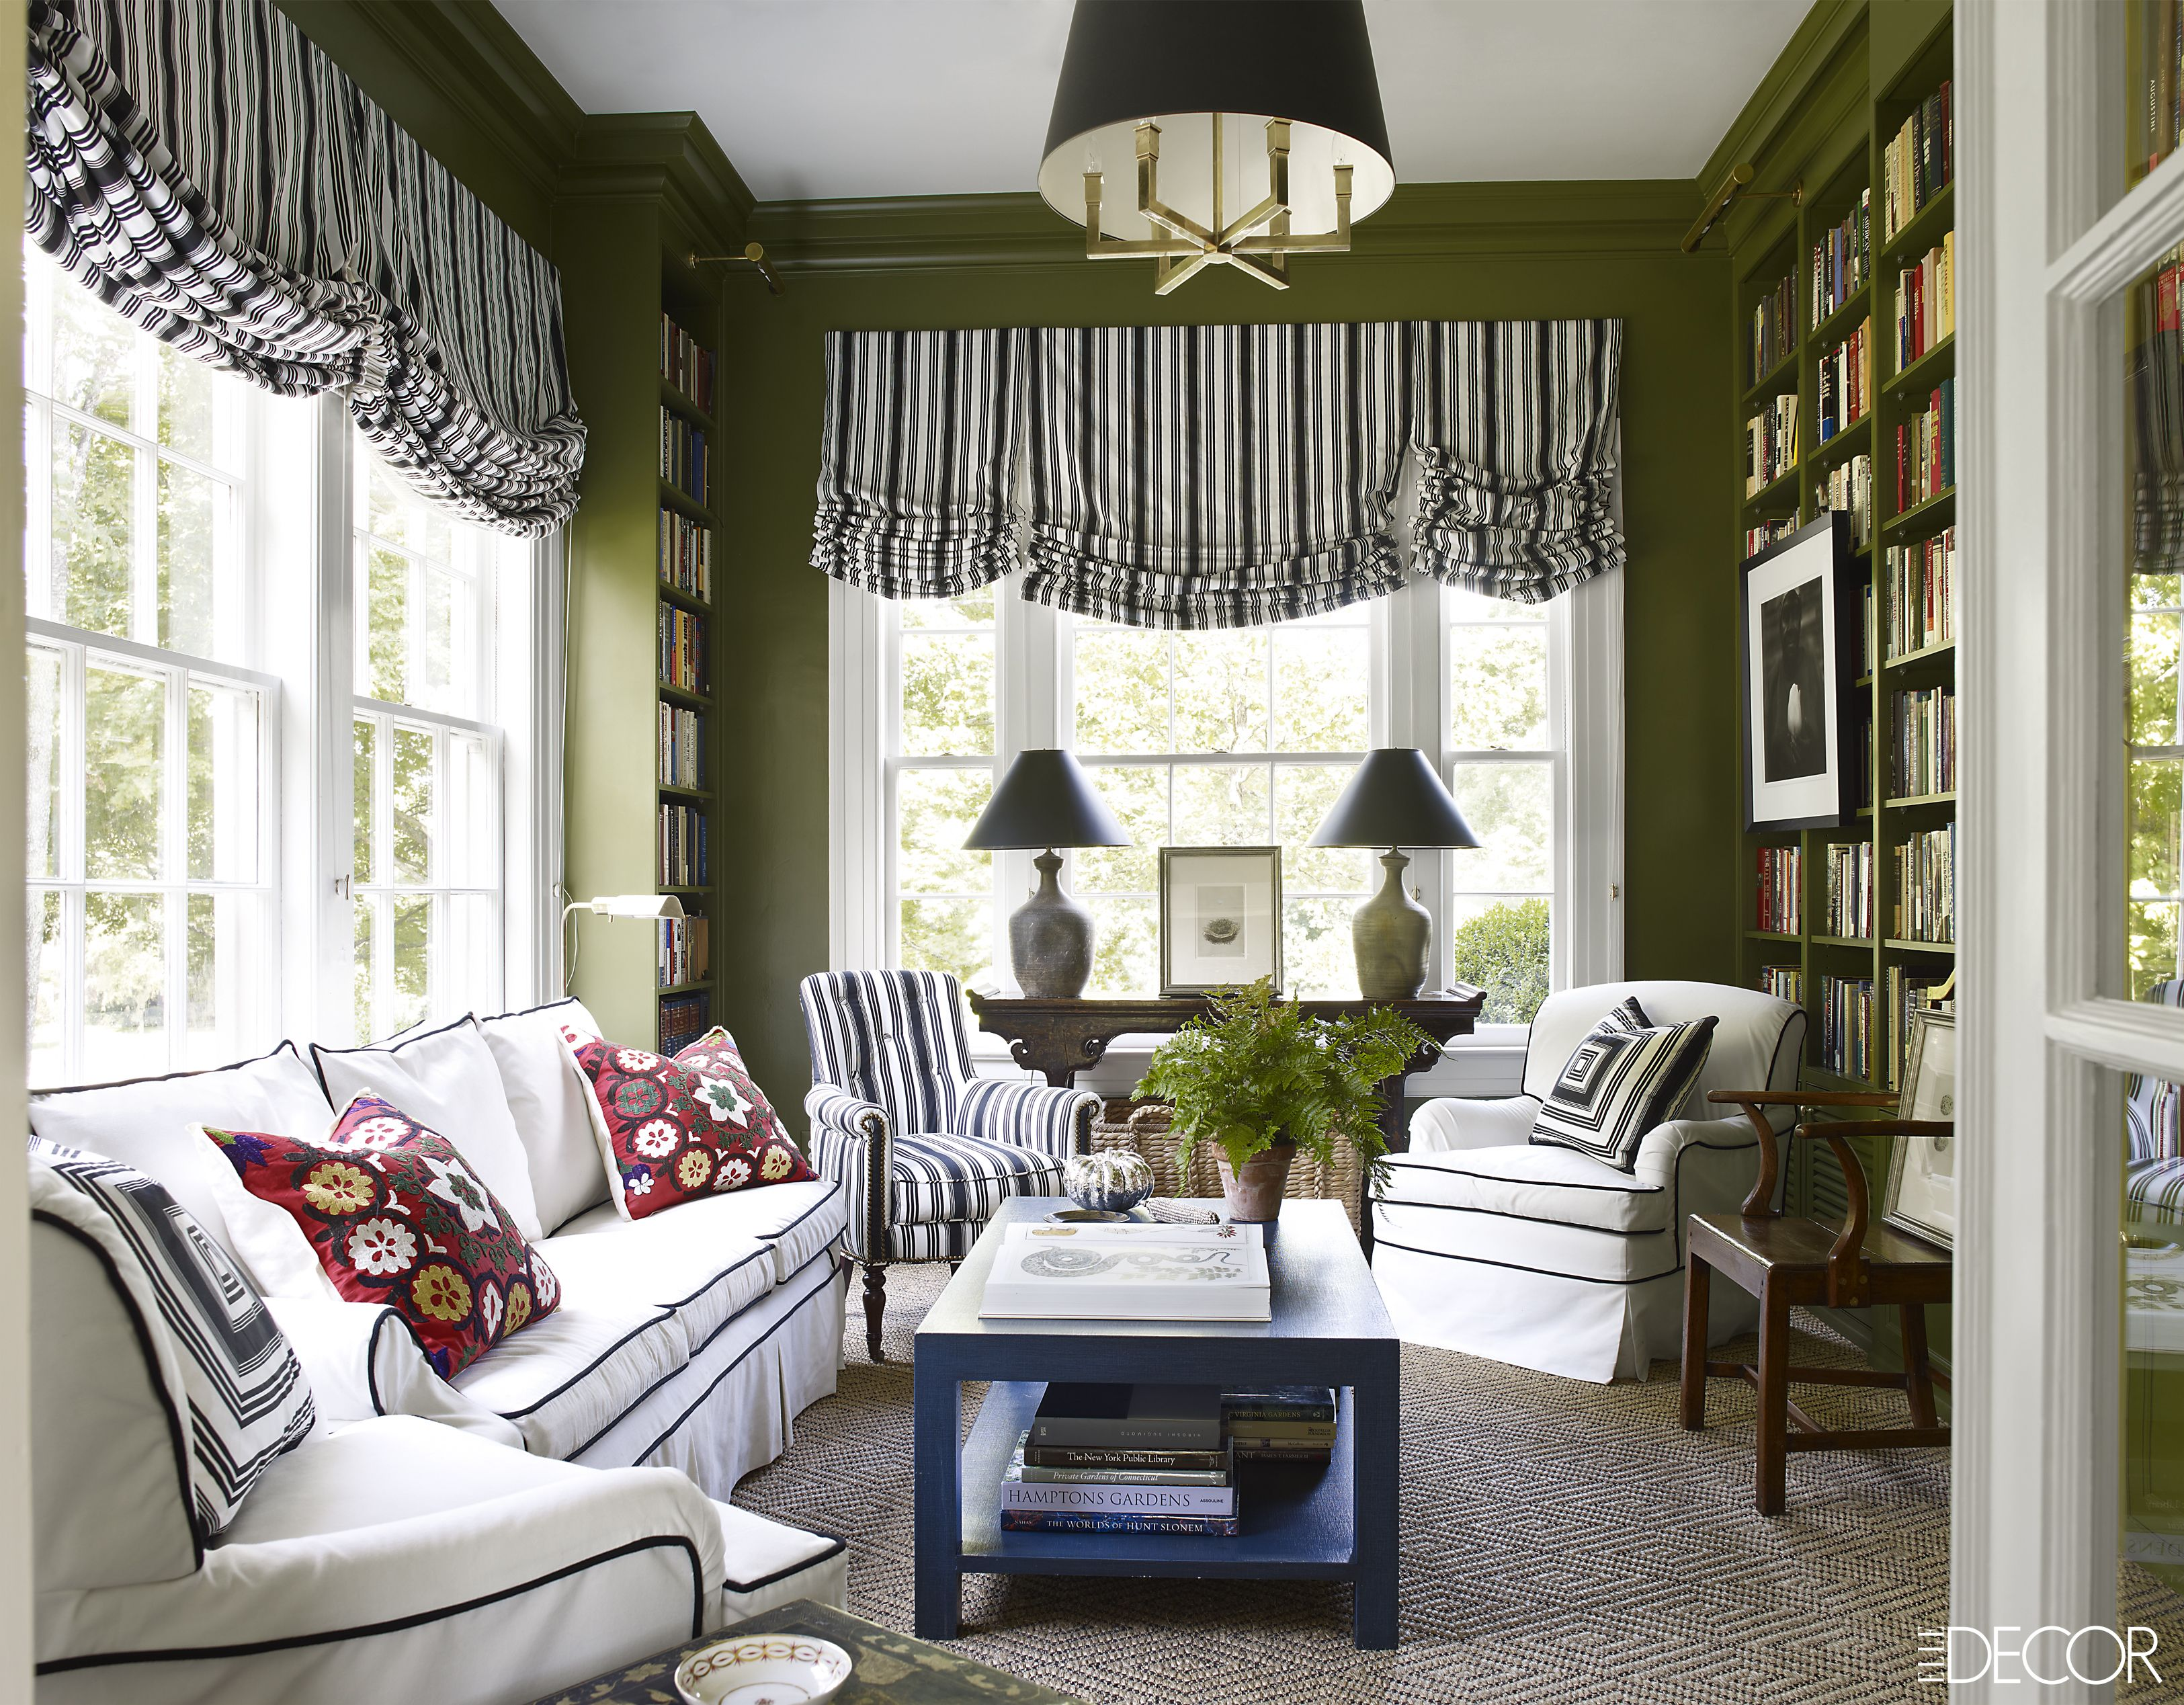 Wonderful Olive Green Paint Color U0026 Decor Ideas   Olive Green Walls, Furniture U0026  Decorations